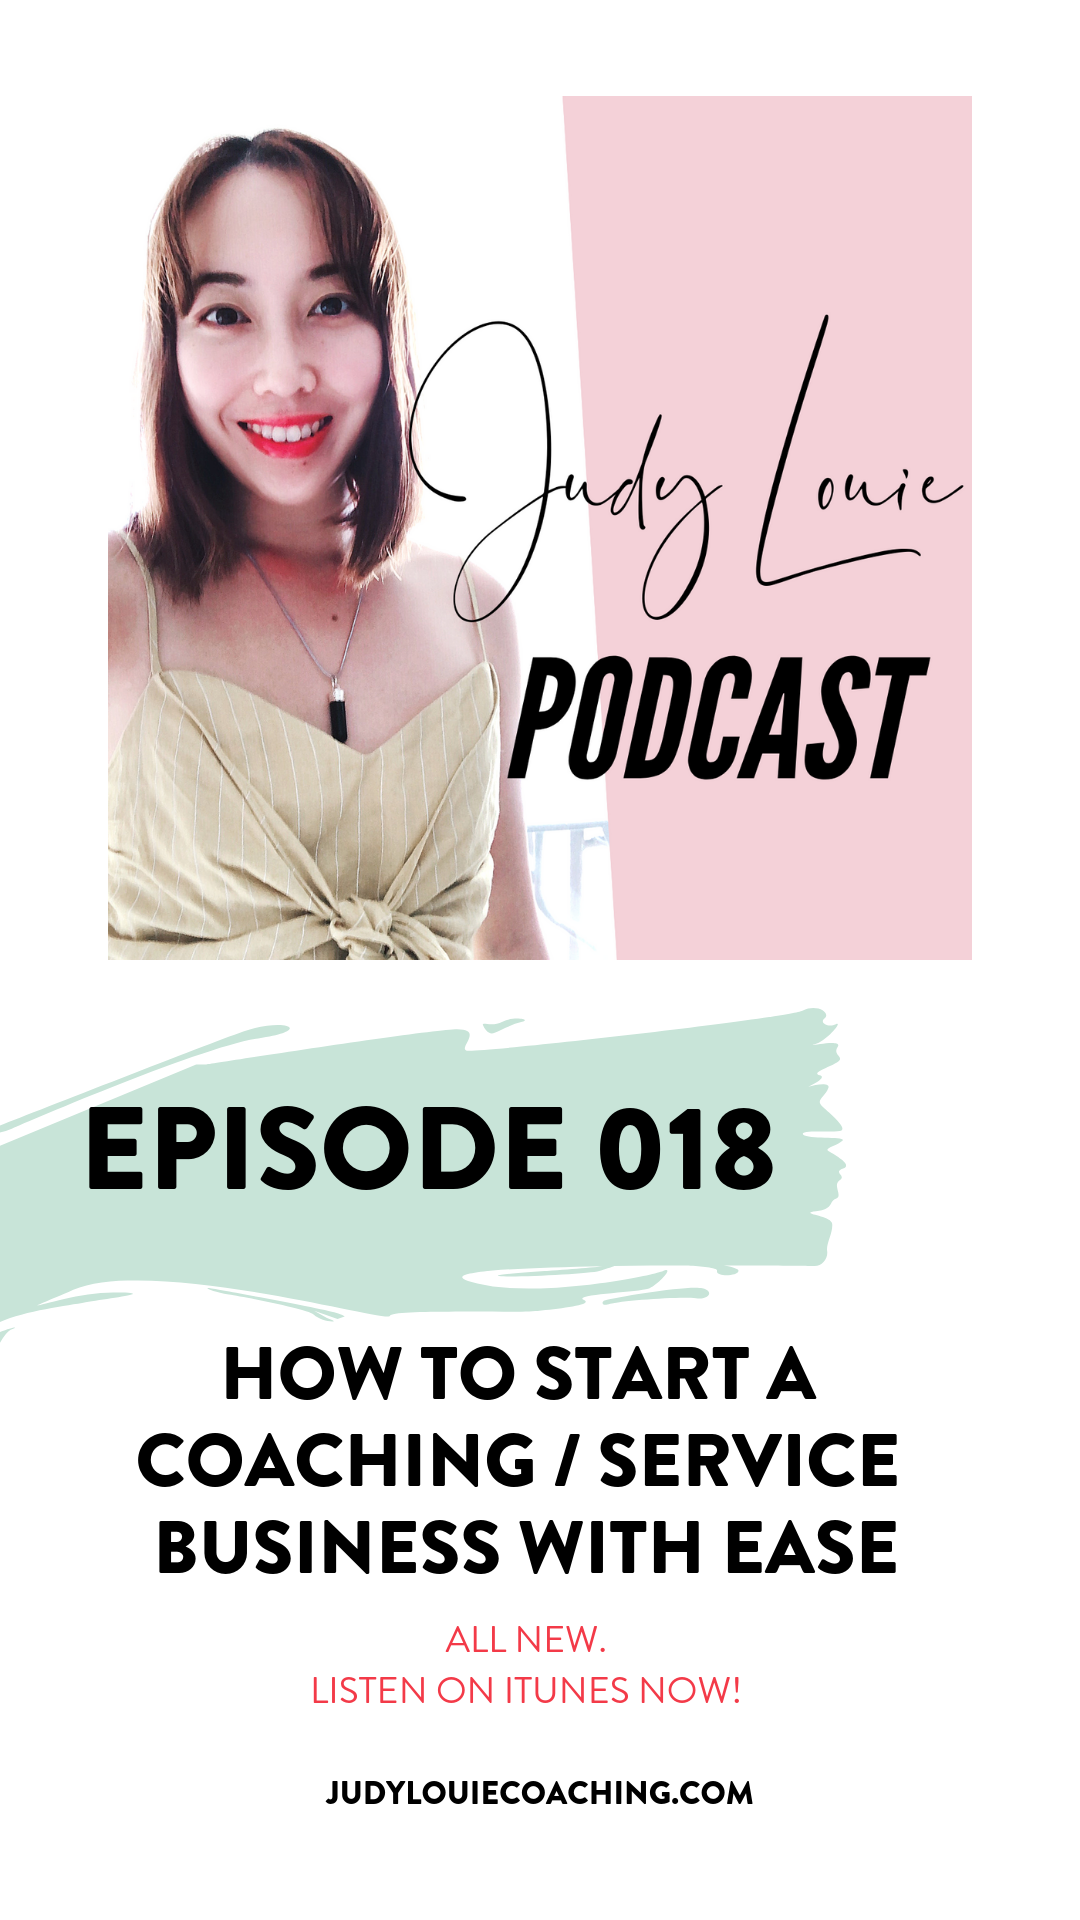 judy louie podcast - start a coaching business- ep018.png